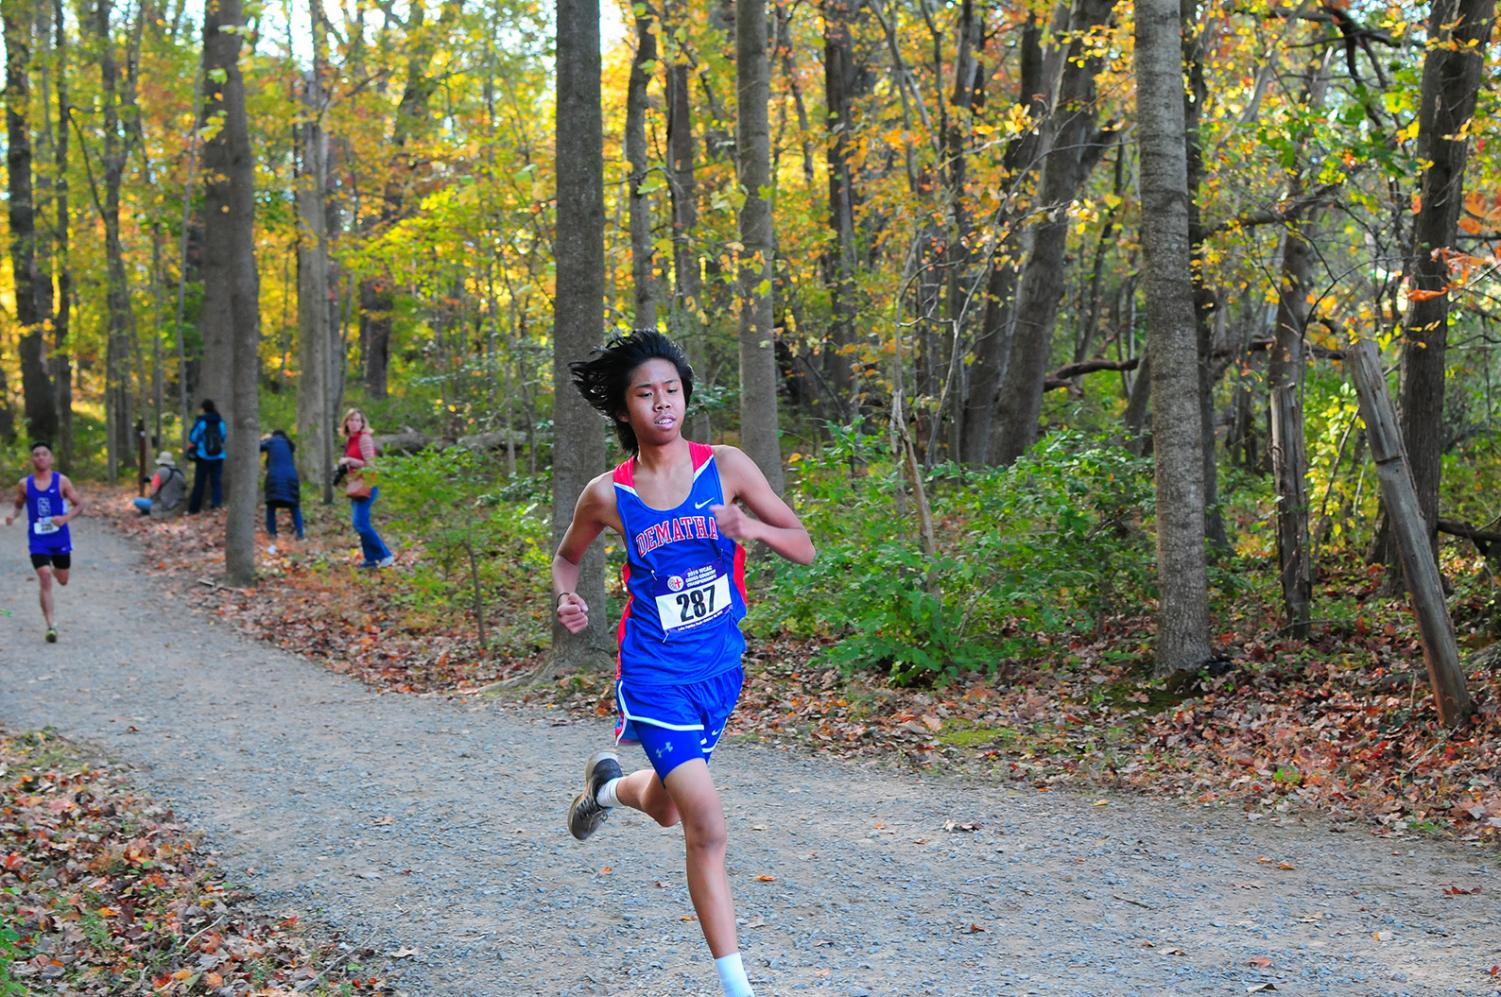 Manuel Legaspi Jr. paces himself during a cross country run. The team had a successful, and Coach Puffett is pushing the runners to be the best they can be in the future through strict training plan according today of the week.